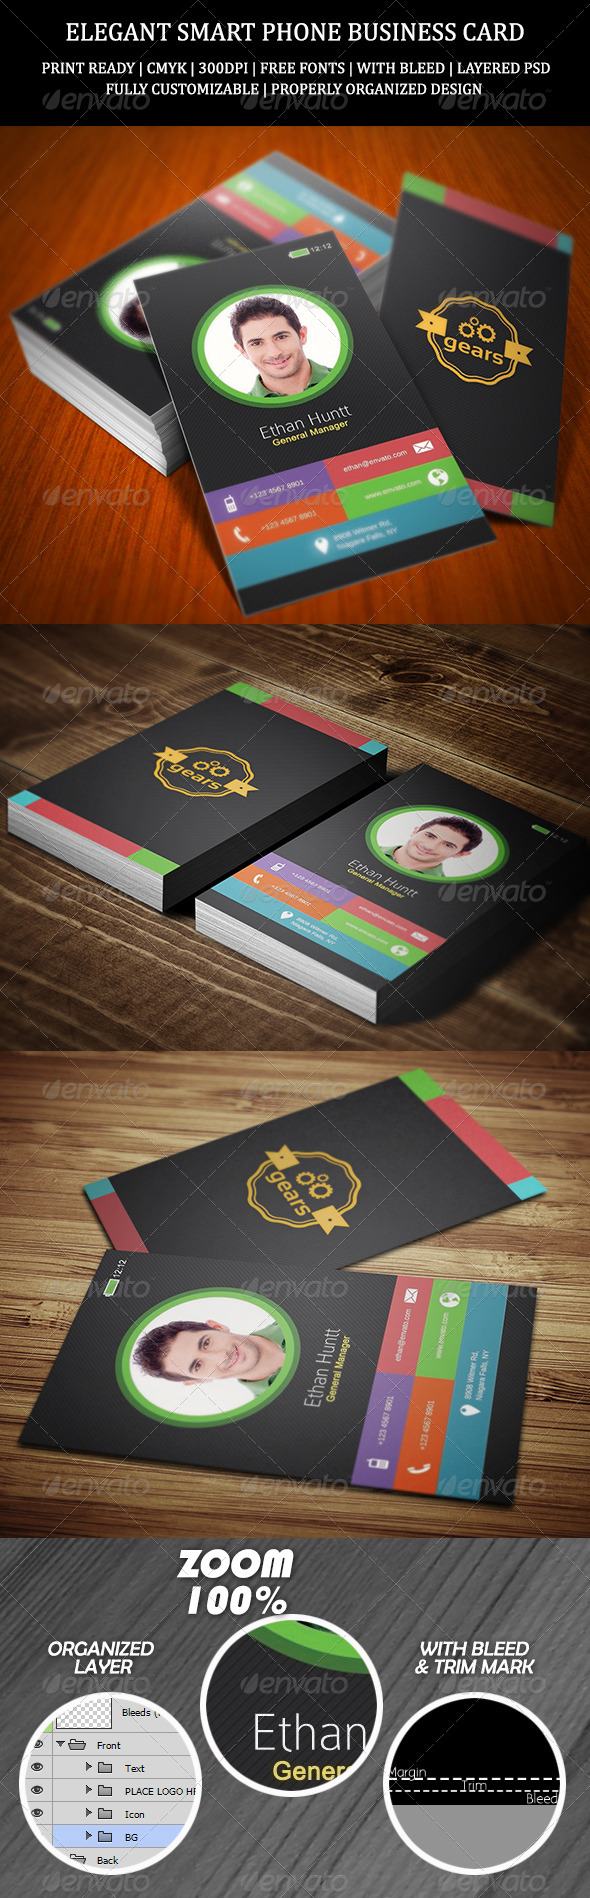 Elegant Smart Phone Business Card - Creative Business Cards